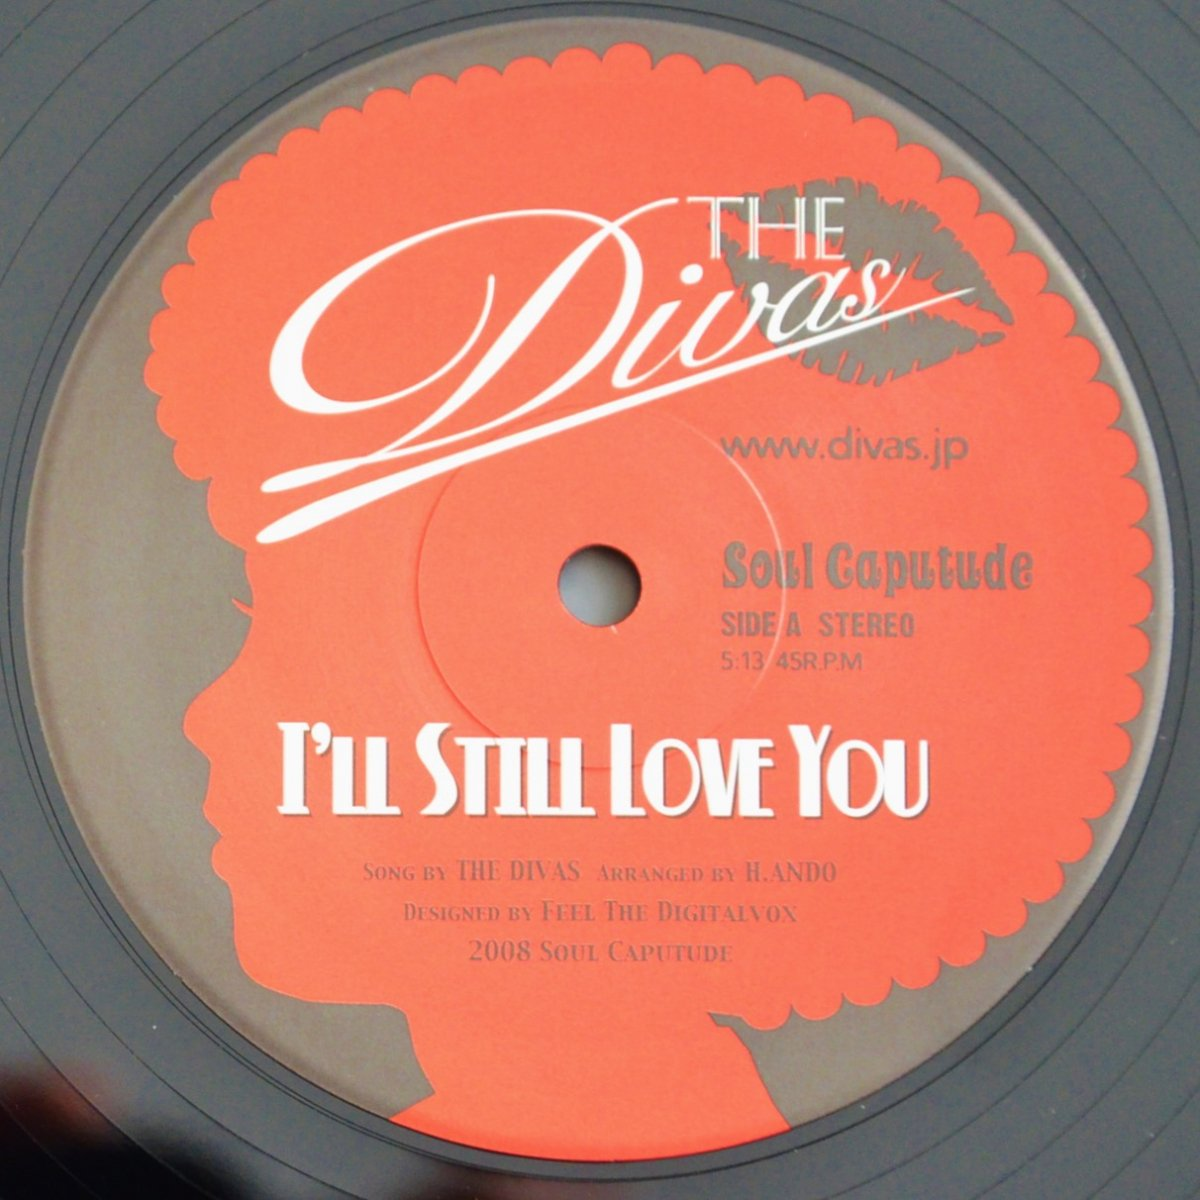 ザ・ディーヴァス THE DIVAS / I'LL STILL LOVE YOU (12